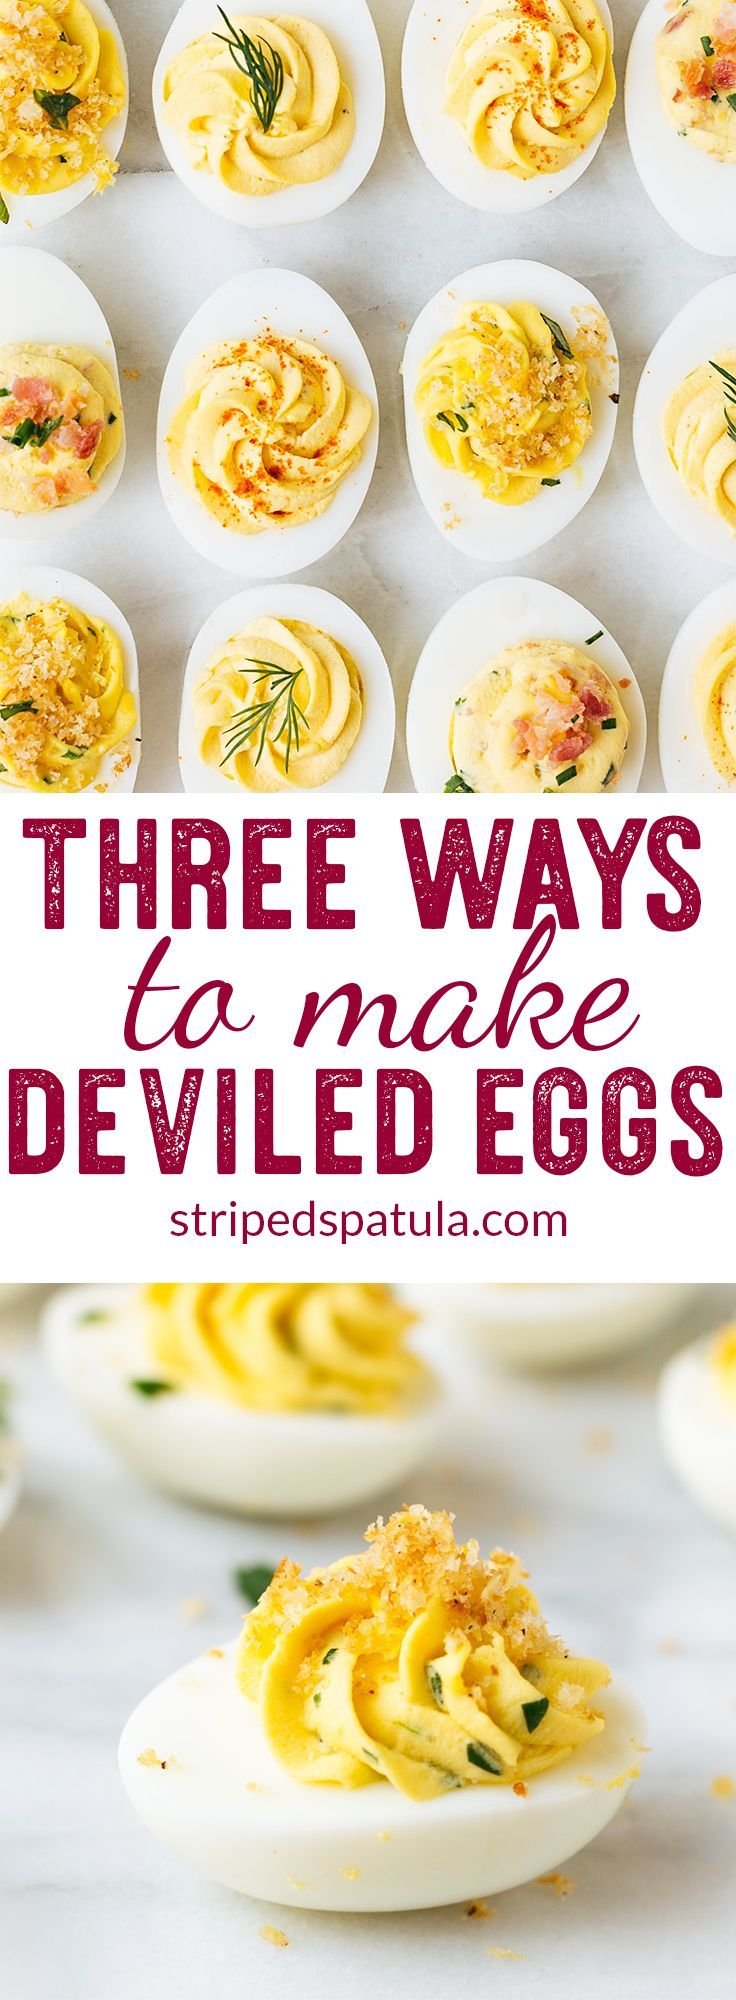 Deviled Eggs Easy Bacon Picnic Recipes Etizers